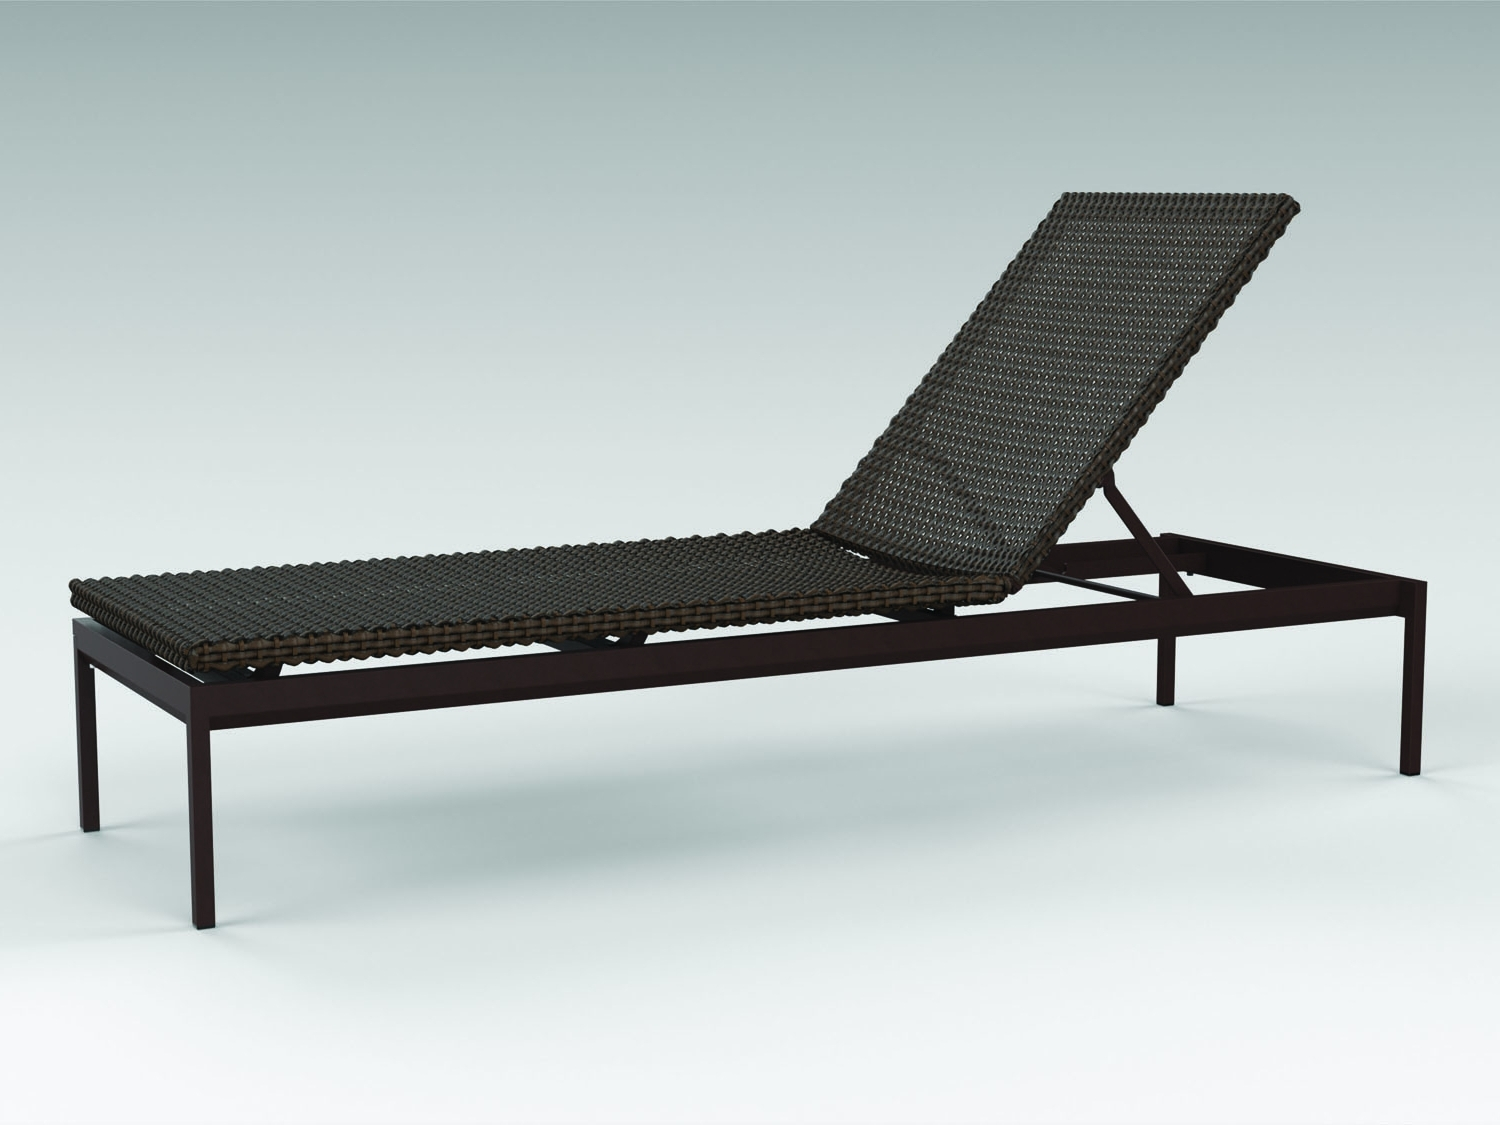 Tropitone Chaise Lounges Throughout Well Known Tropitone Chaise Lounge Chairs • Lounge Chairs Ideas (View 5 of 15)